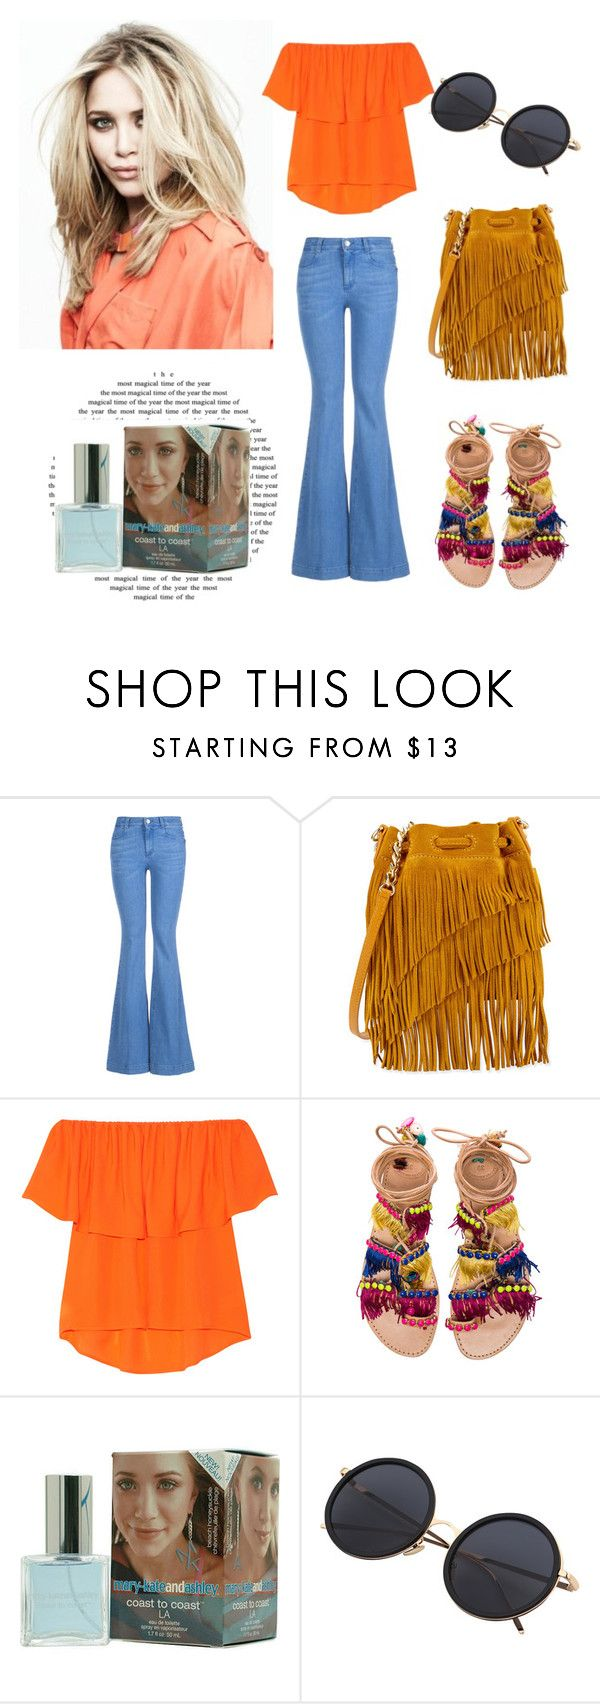 """#Casual"" by renesmi on Polyvore featuring мода, Olsen, STELLA McCARTNEY, Elizabeth and James, Rebecca Minkoff, Elina Linardaki, Mary_Kate и Ashley_Olsen"